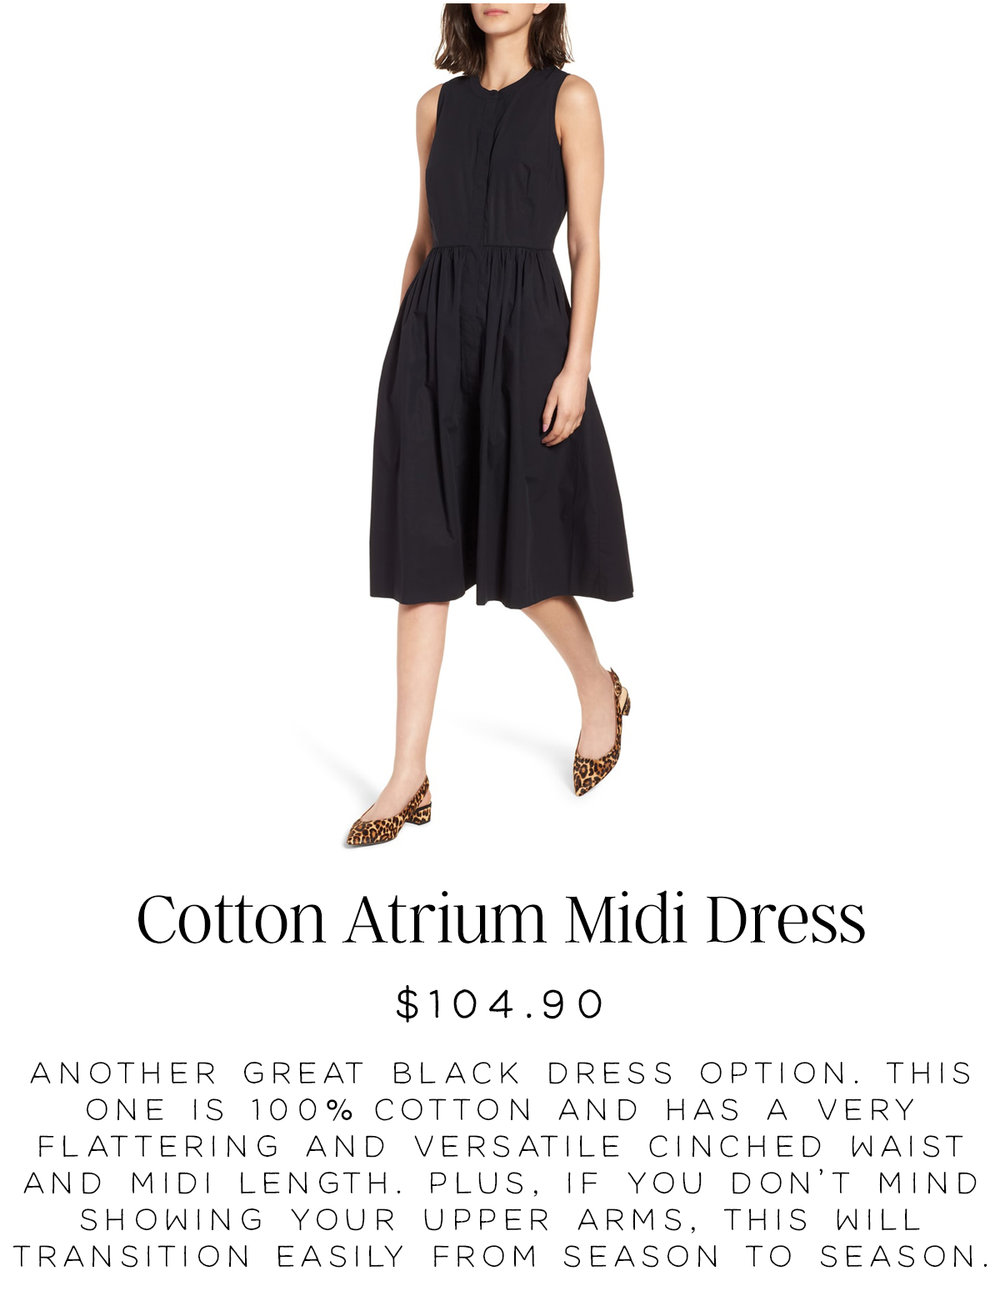 nordstrom-anniversary-sale-picks-jcrew-black-dress.jpg